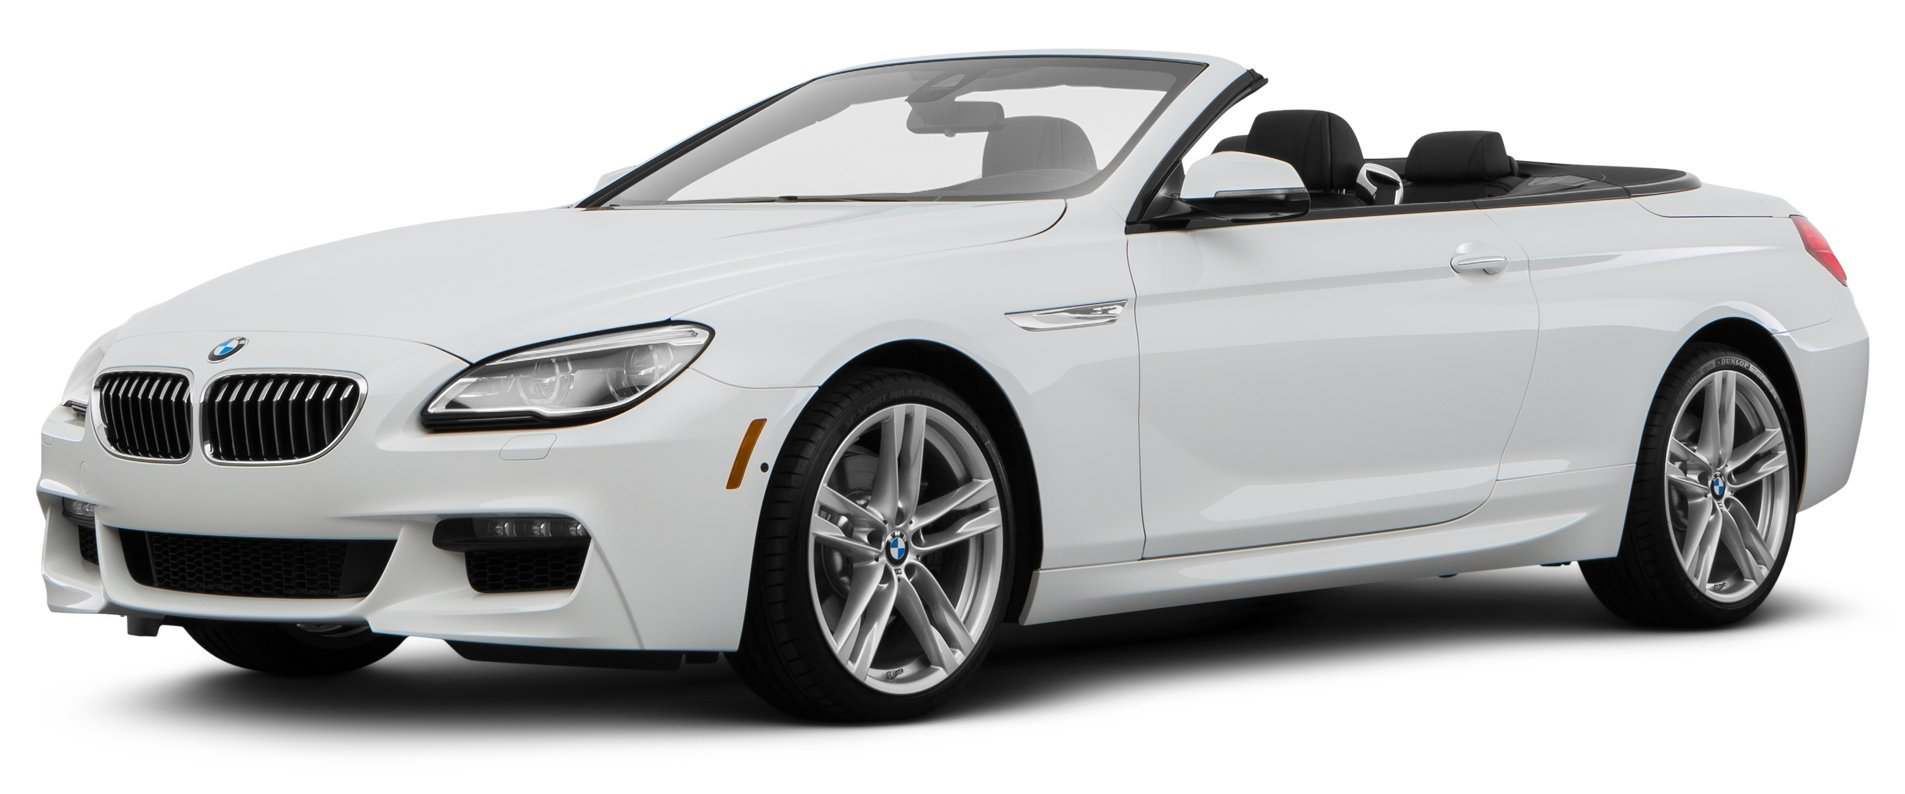 2016 Mercedes Benz S550 Reviews Images And